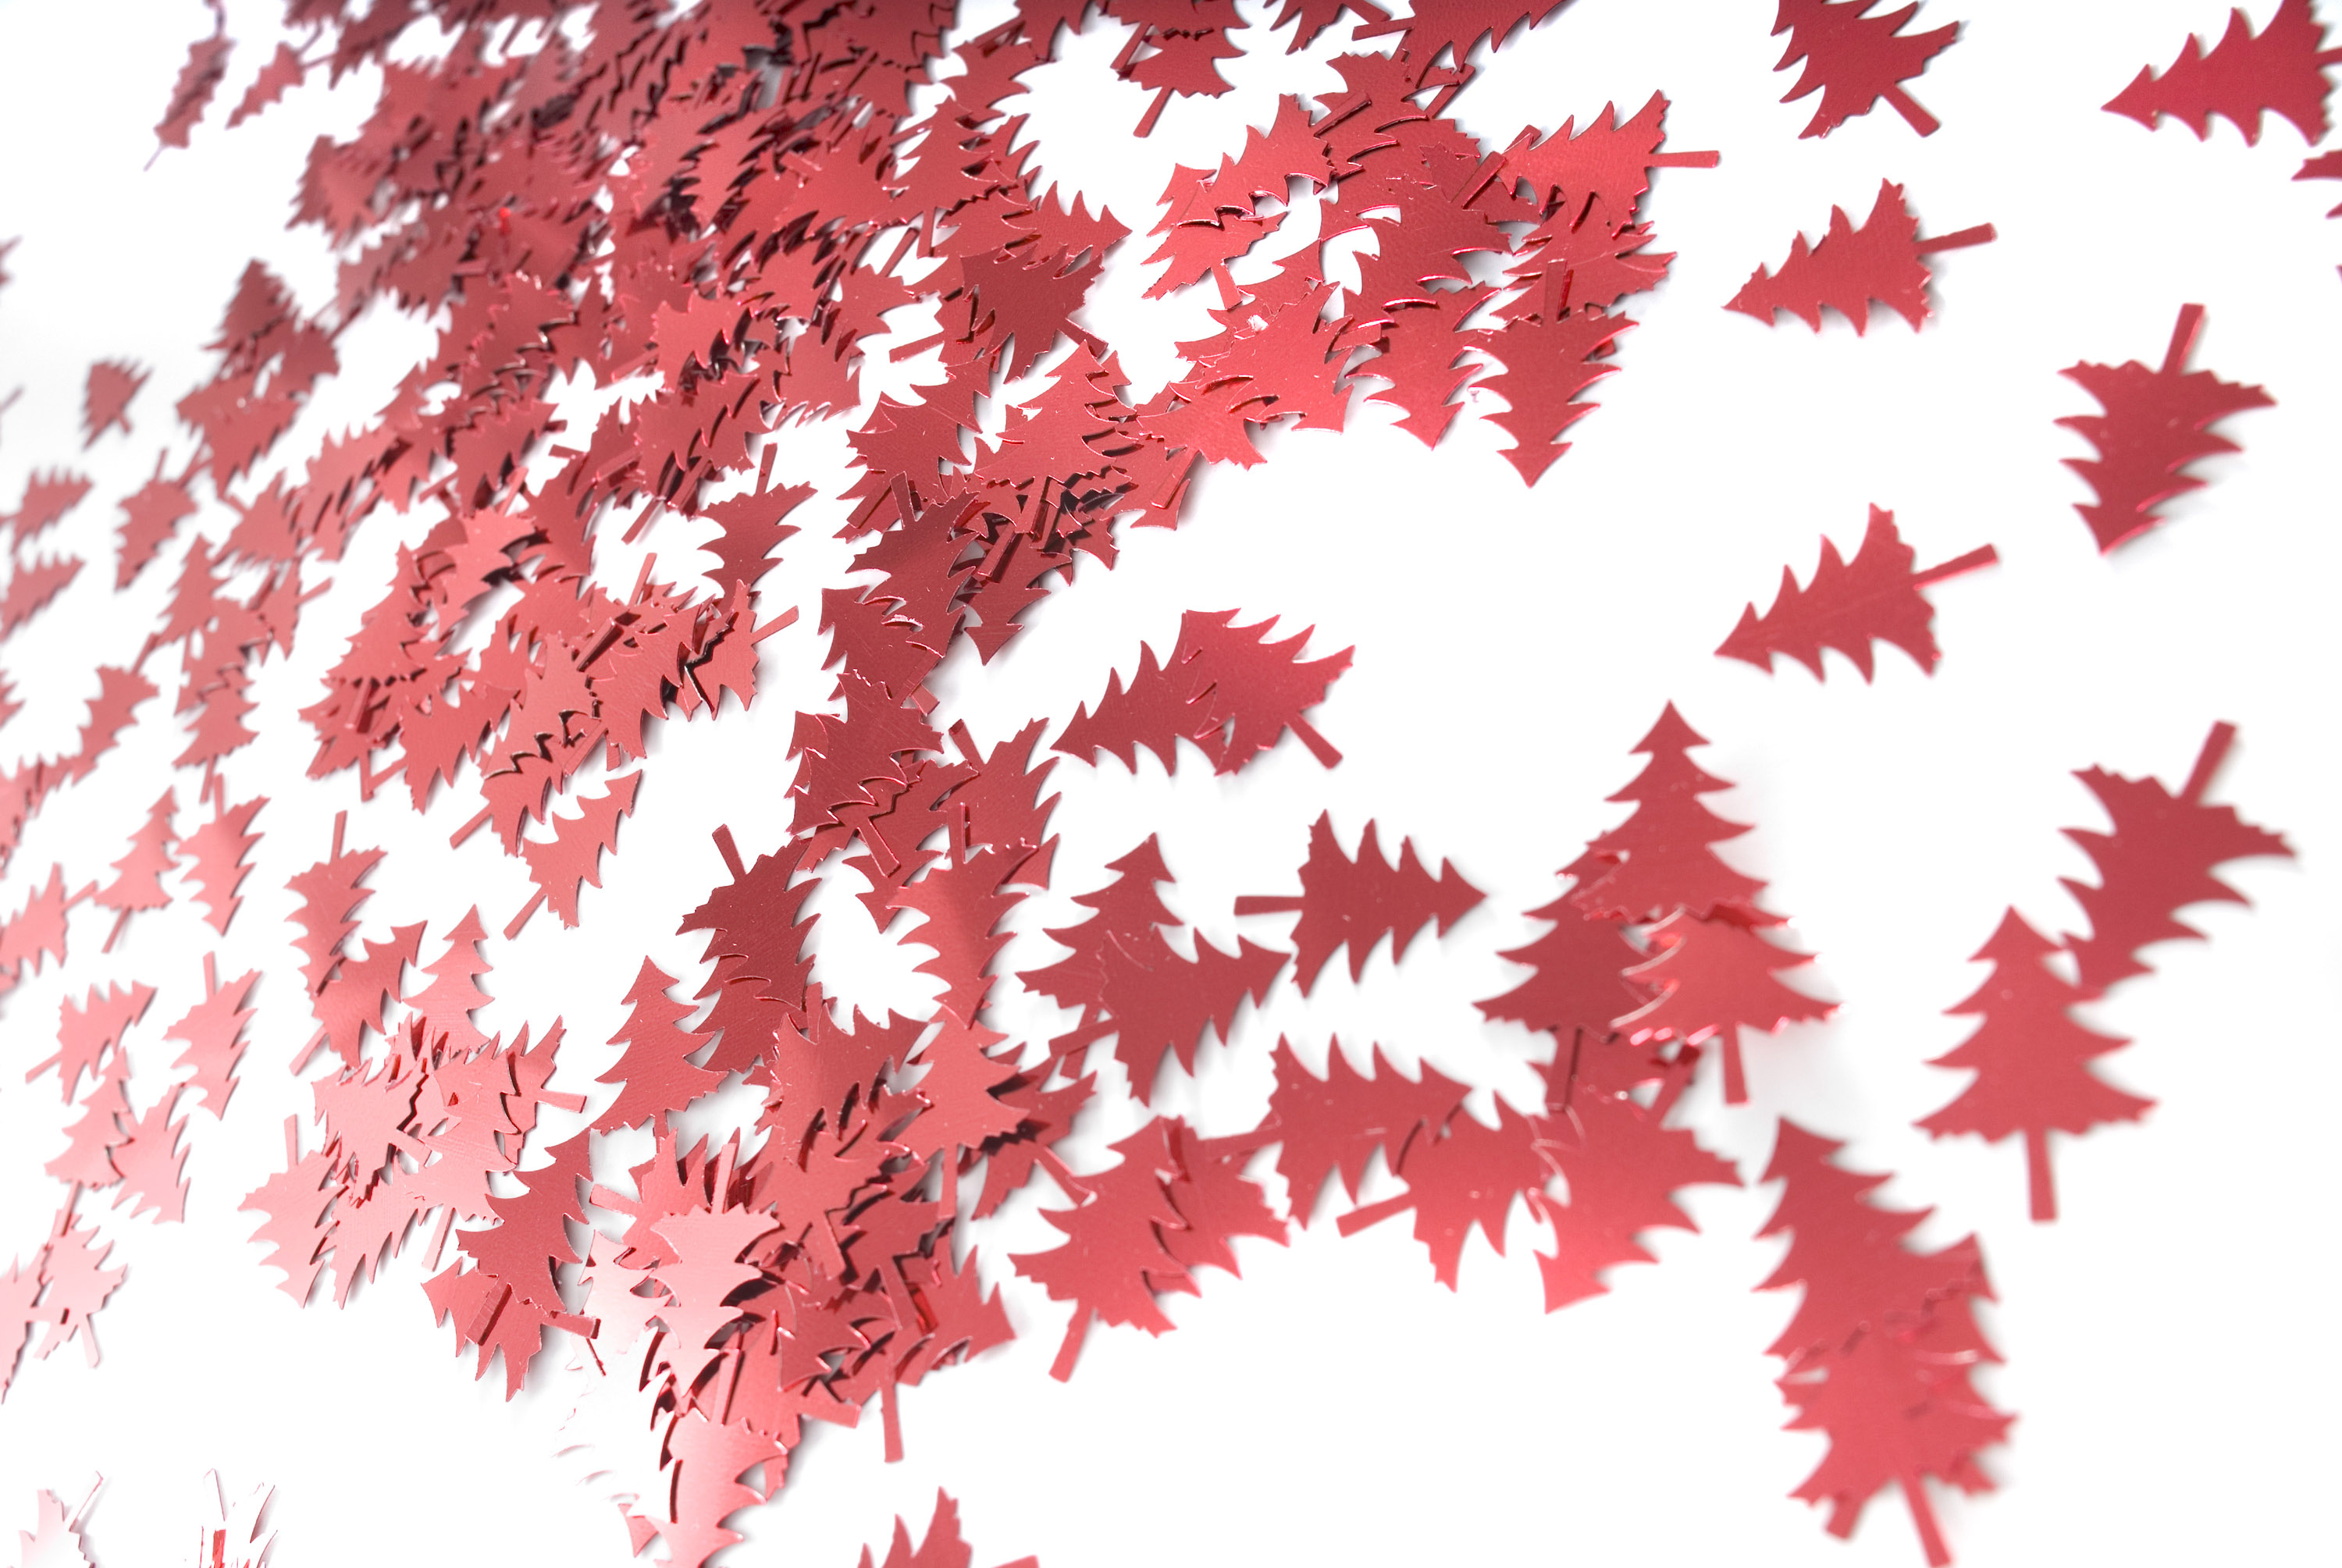 A background image of red metallic christmas tree shapes